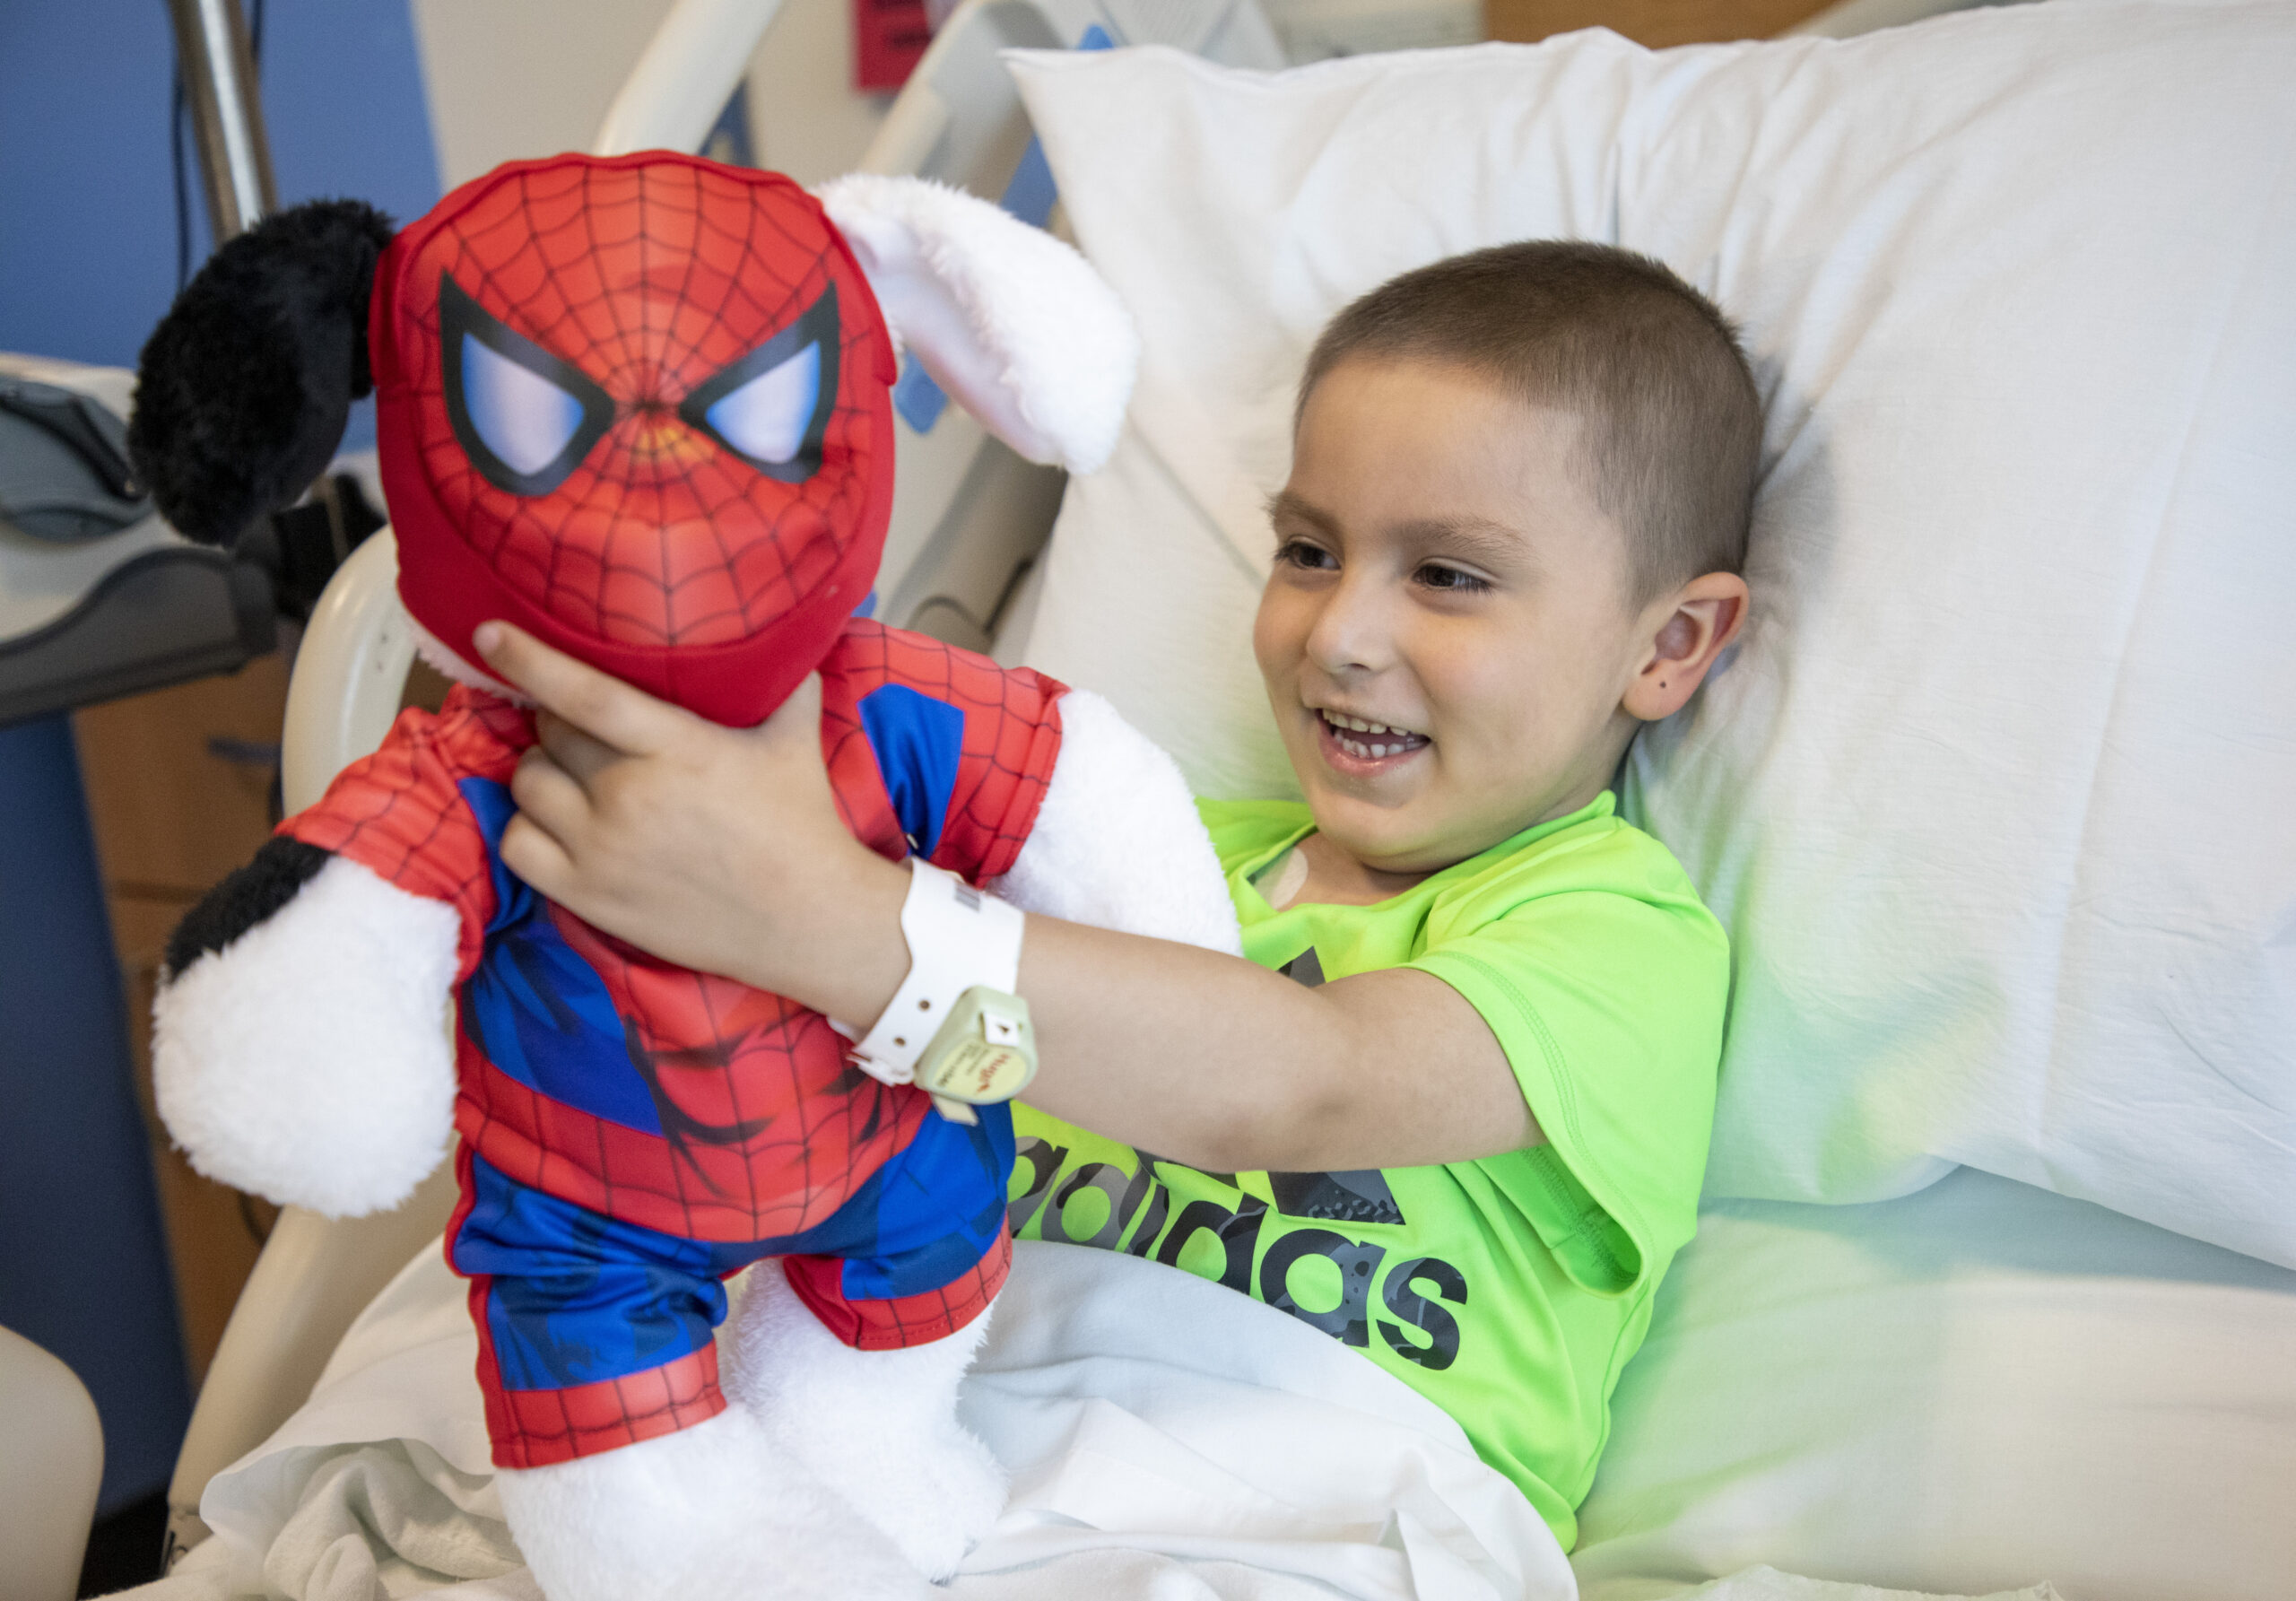 Celebrating our 175th BLUE for Kids hospital visit in Chicago by delivering 100 Build-A-Bear furry friends and more to kids undergoing medical treatment